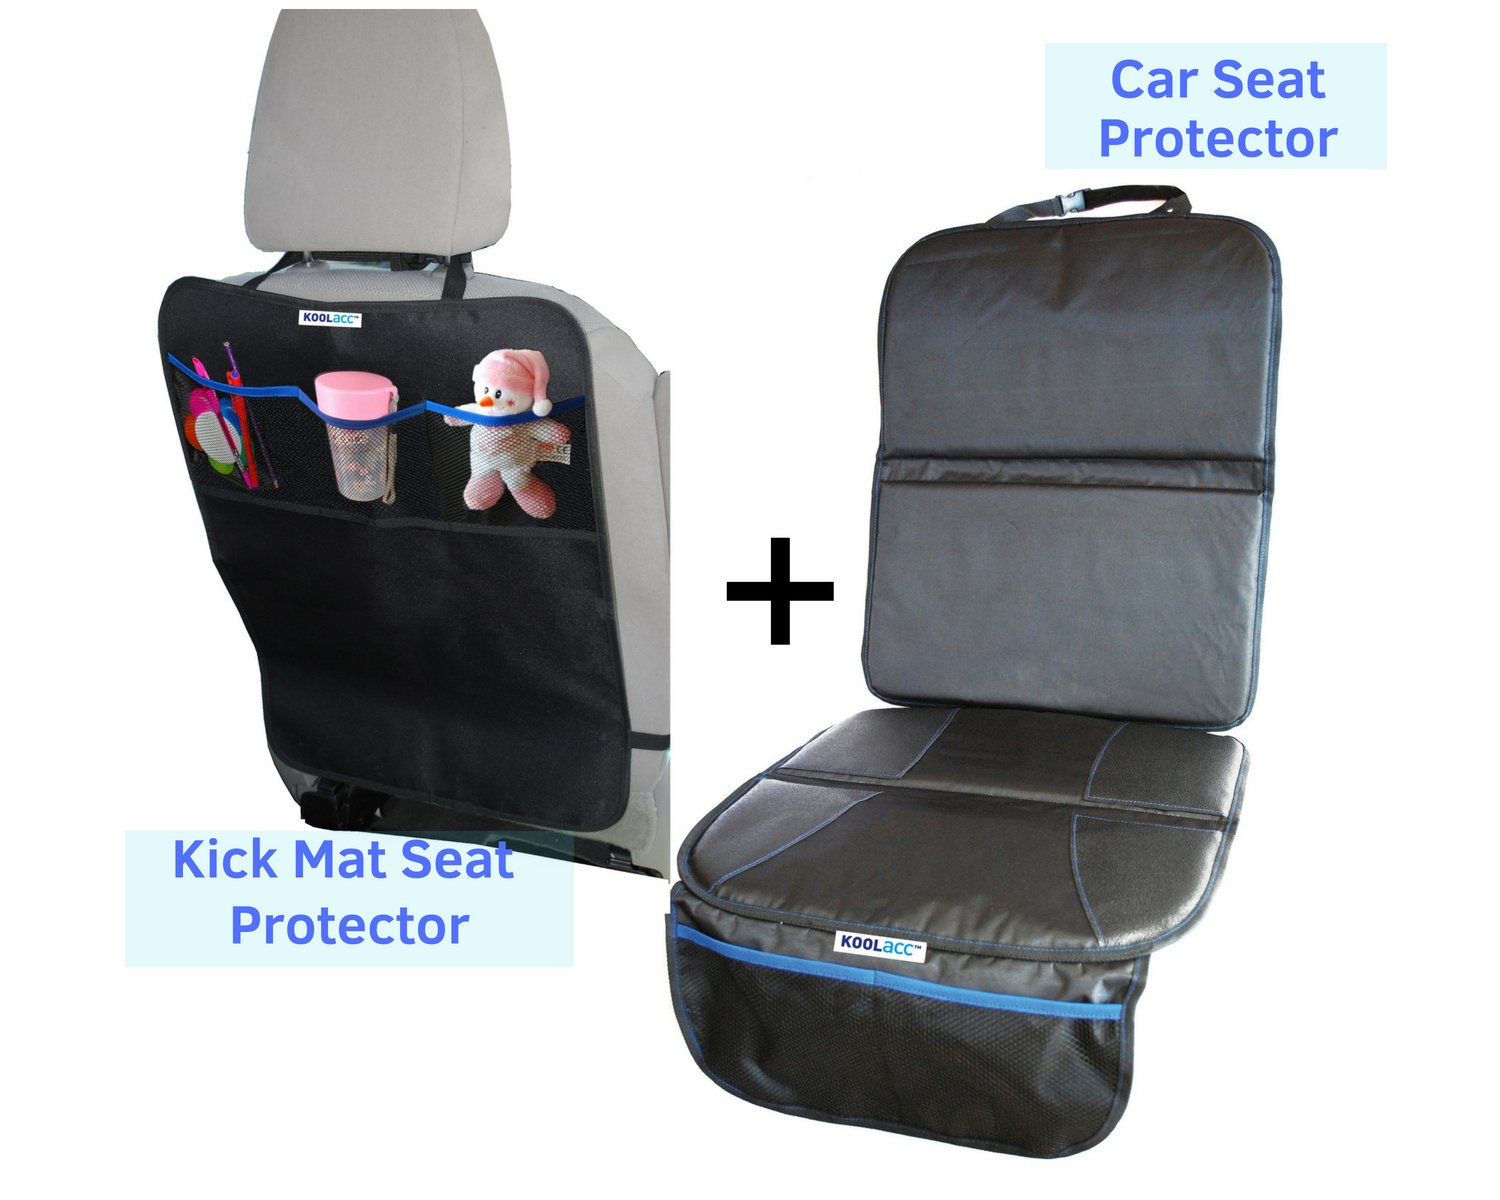 Car Seat Protector + Kick Mat Back Seat Protector Set : Perfect CarSeat Seat Protector fits Under Baby & Child Car Seat or Dogs, Cover Pad Protects Vehicle Leather Seats